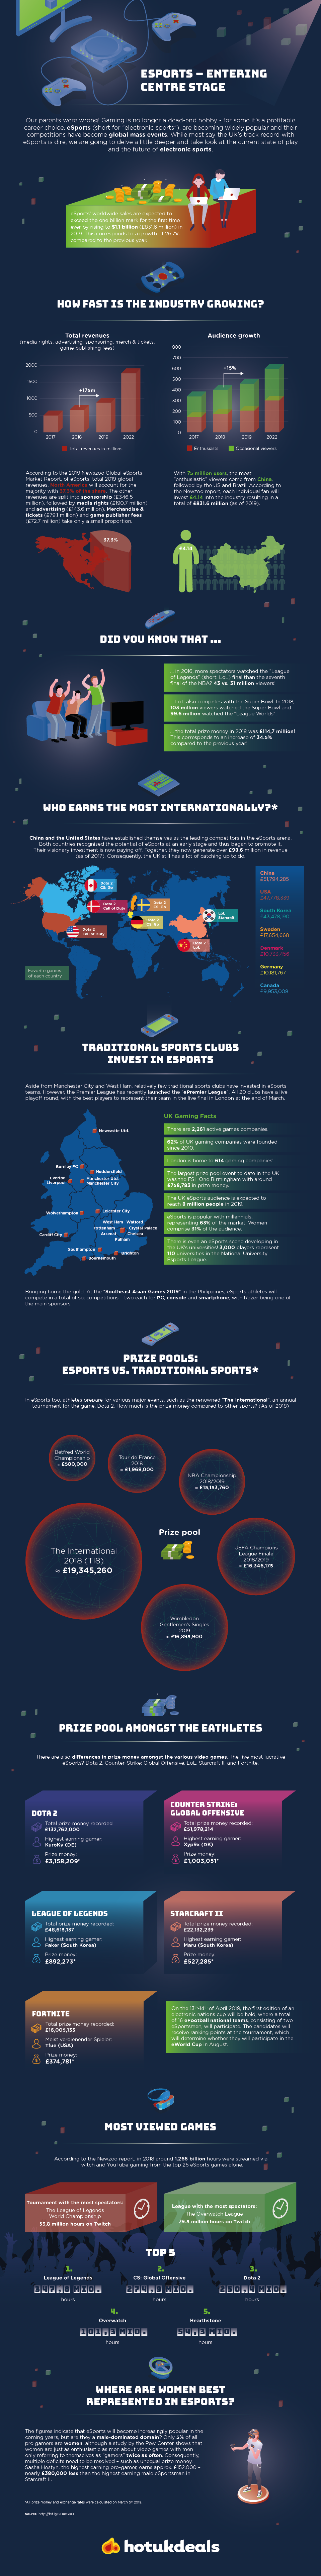 eSports Passion Industry Infographic Image